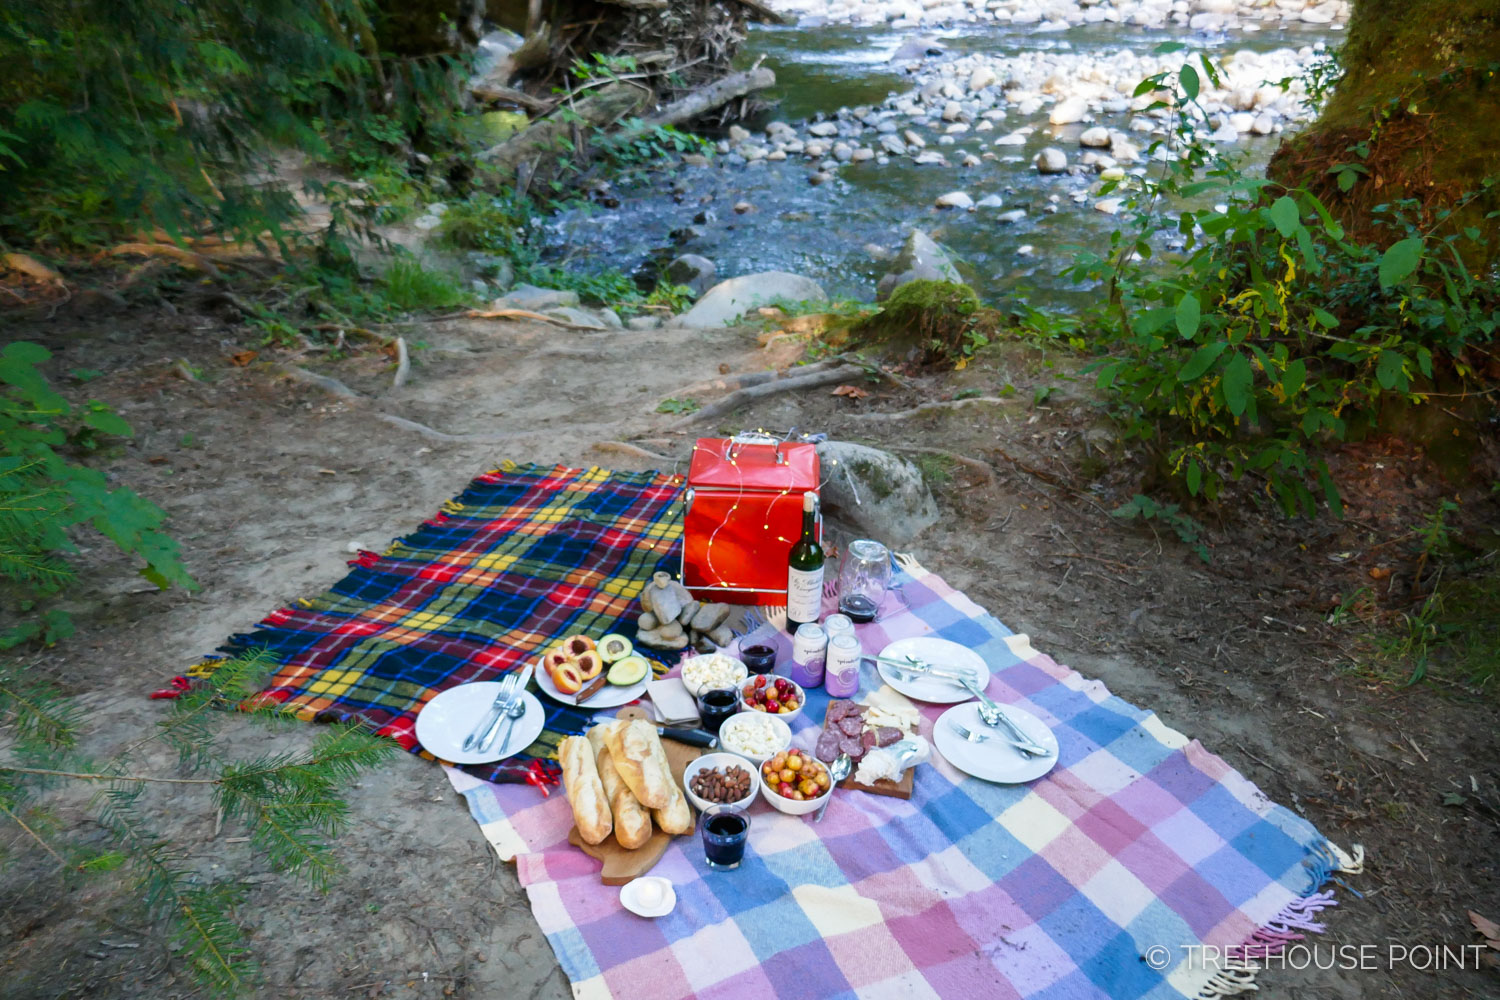 Picnicking on the bank of the Raging River is a wonderful dinner option during summer months.